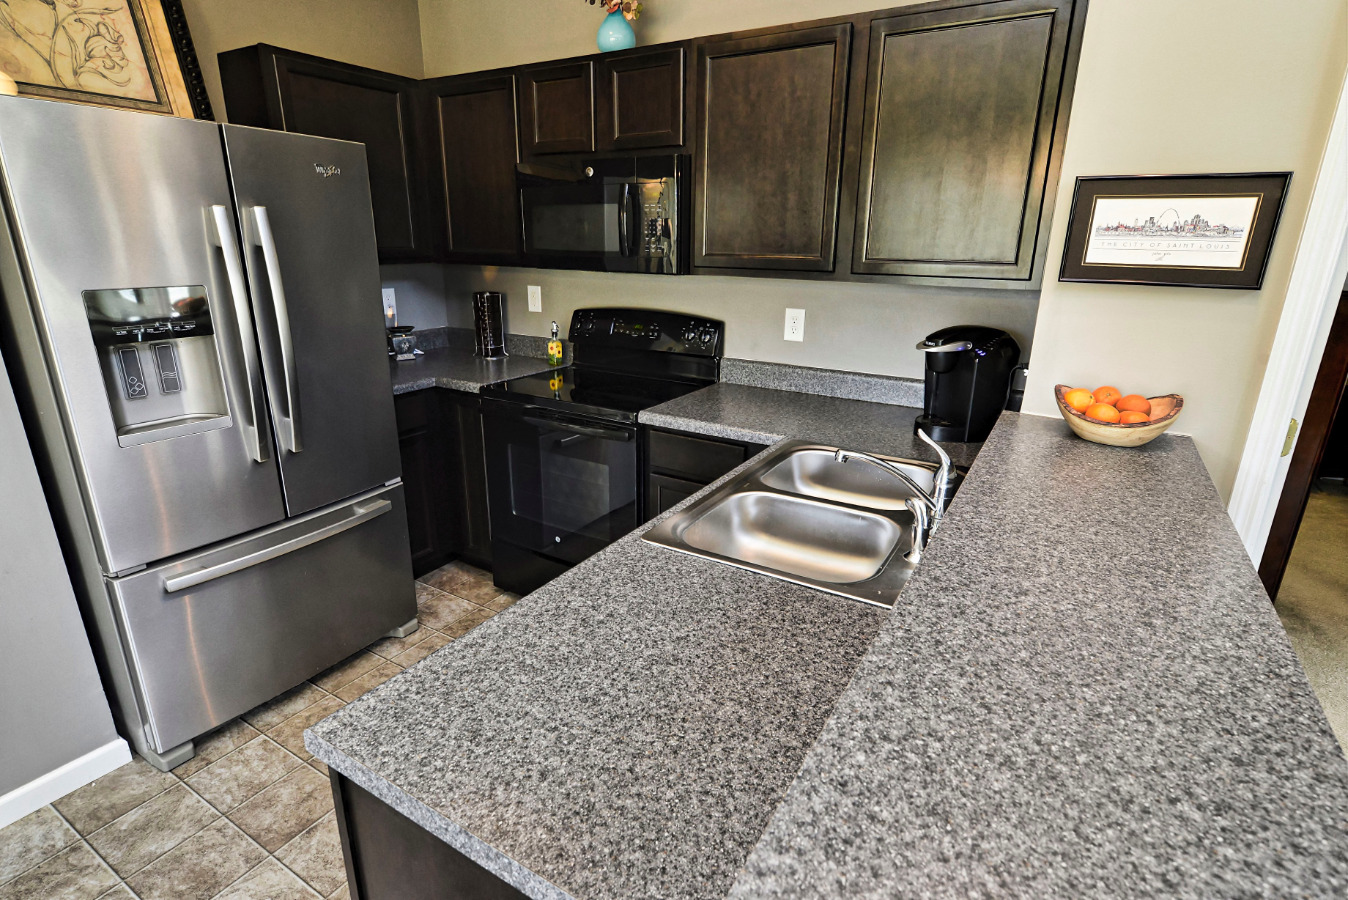 The kitchen is well thought out and efficient! No wasted space here!